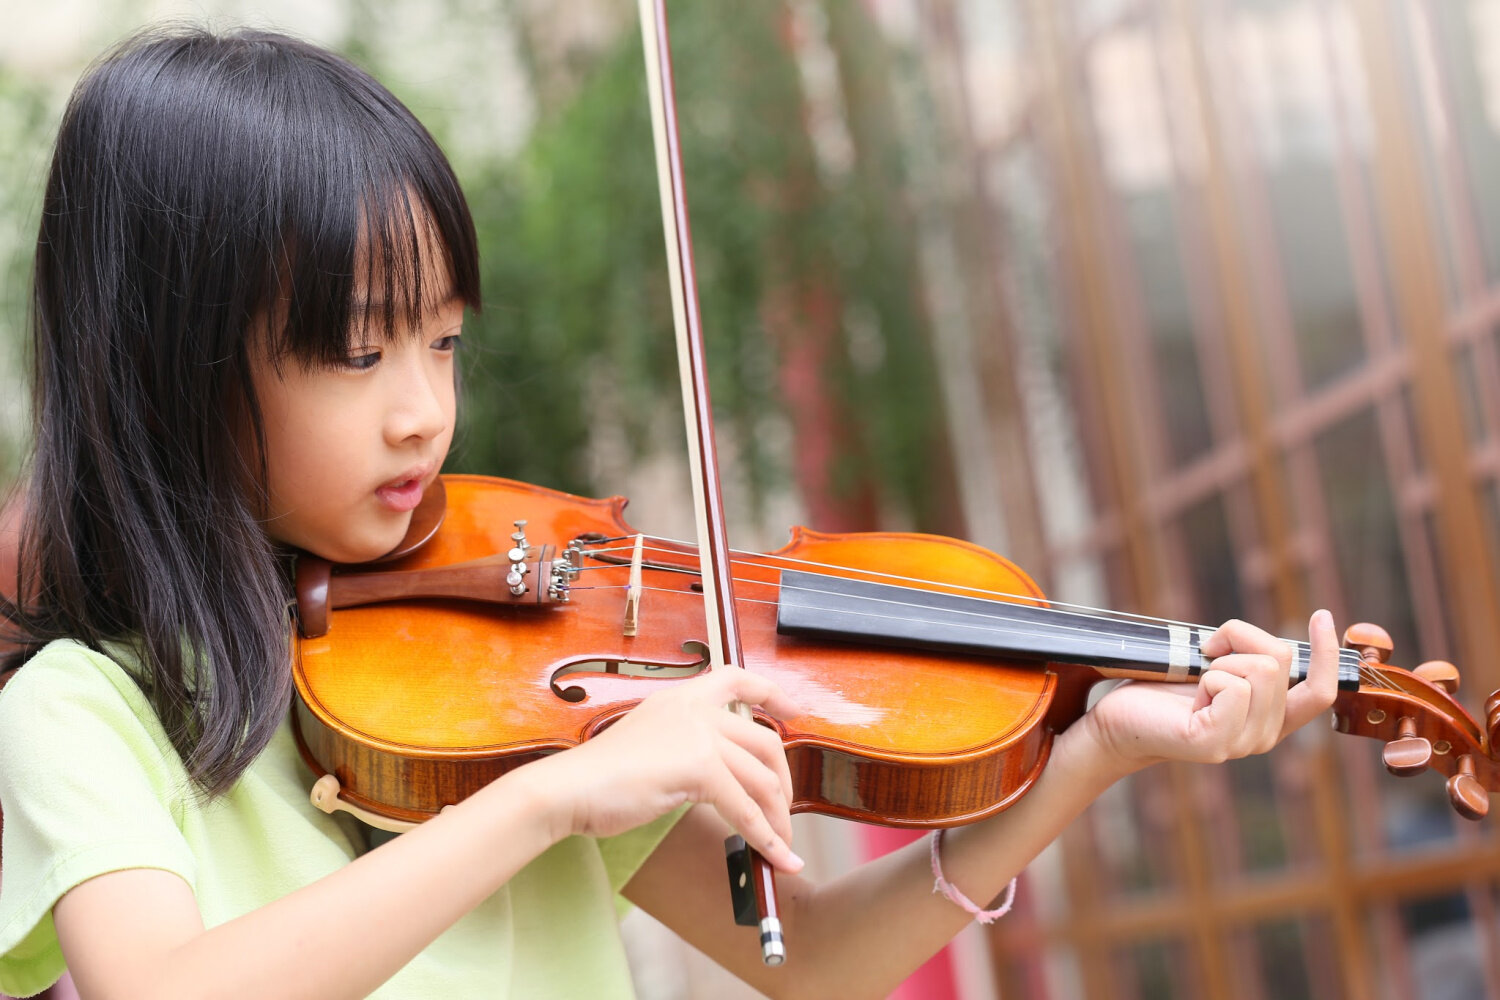 Violin Lessons   in Mendota Heights   for beginner, intermediate, and advanced students of all ages   CALL 651-263-9475 TO SCHEDULE YOUR FIRST LESSON   REQUEST INFO